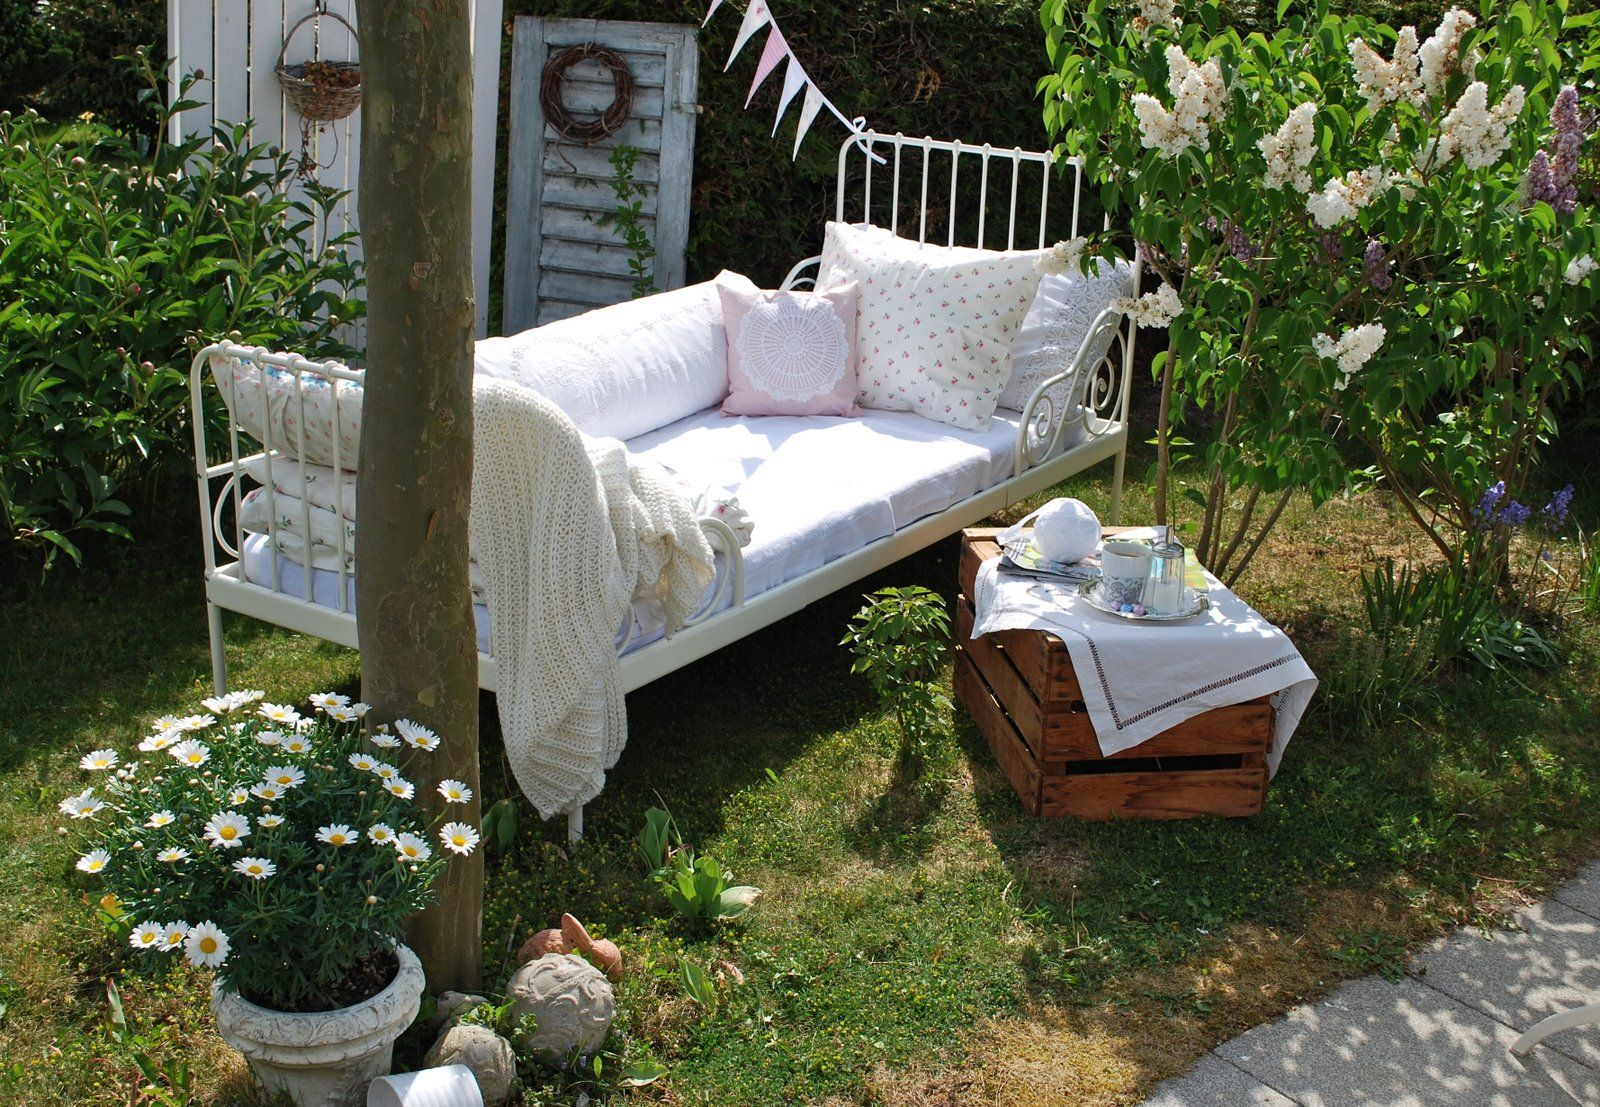 bett im garten garten pinterest gardens and garten. Black Bedroom Furniture Sets. Home Design Ideas